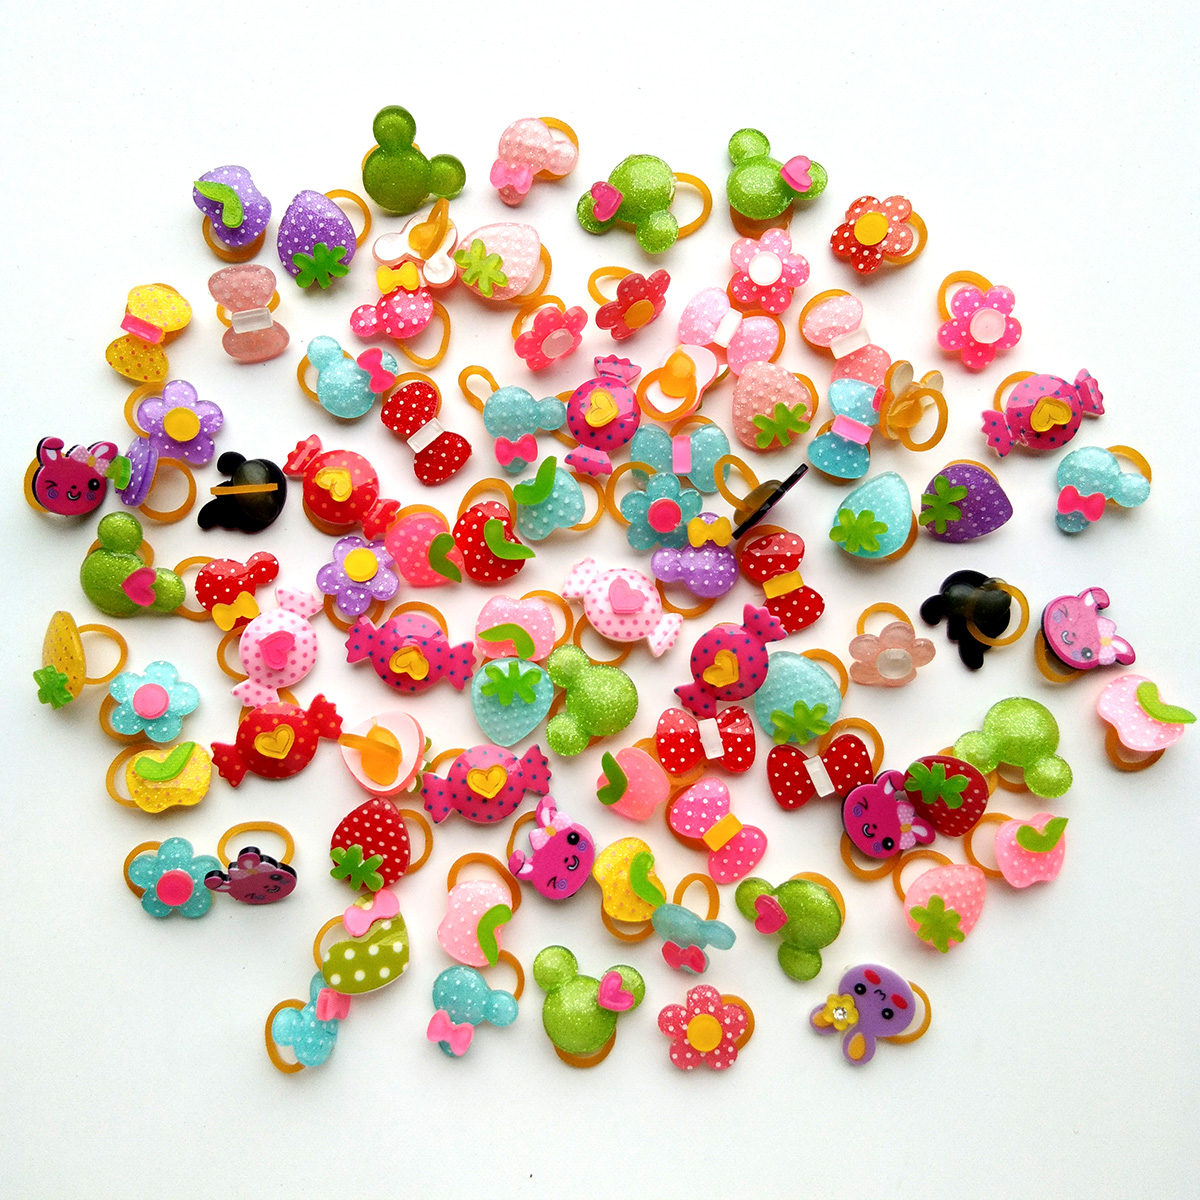 100pcs Pet Hair Bows Summer Fruit Style Dog Hair Accessories Rubber Bands Watermelon Pineapple Dog Accessories